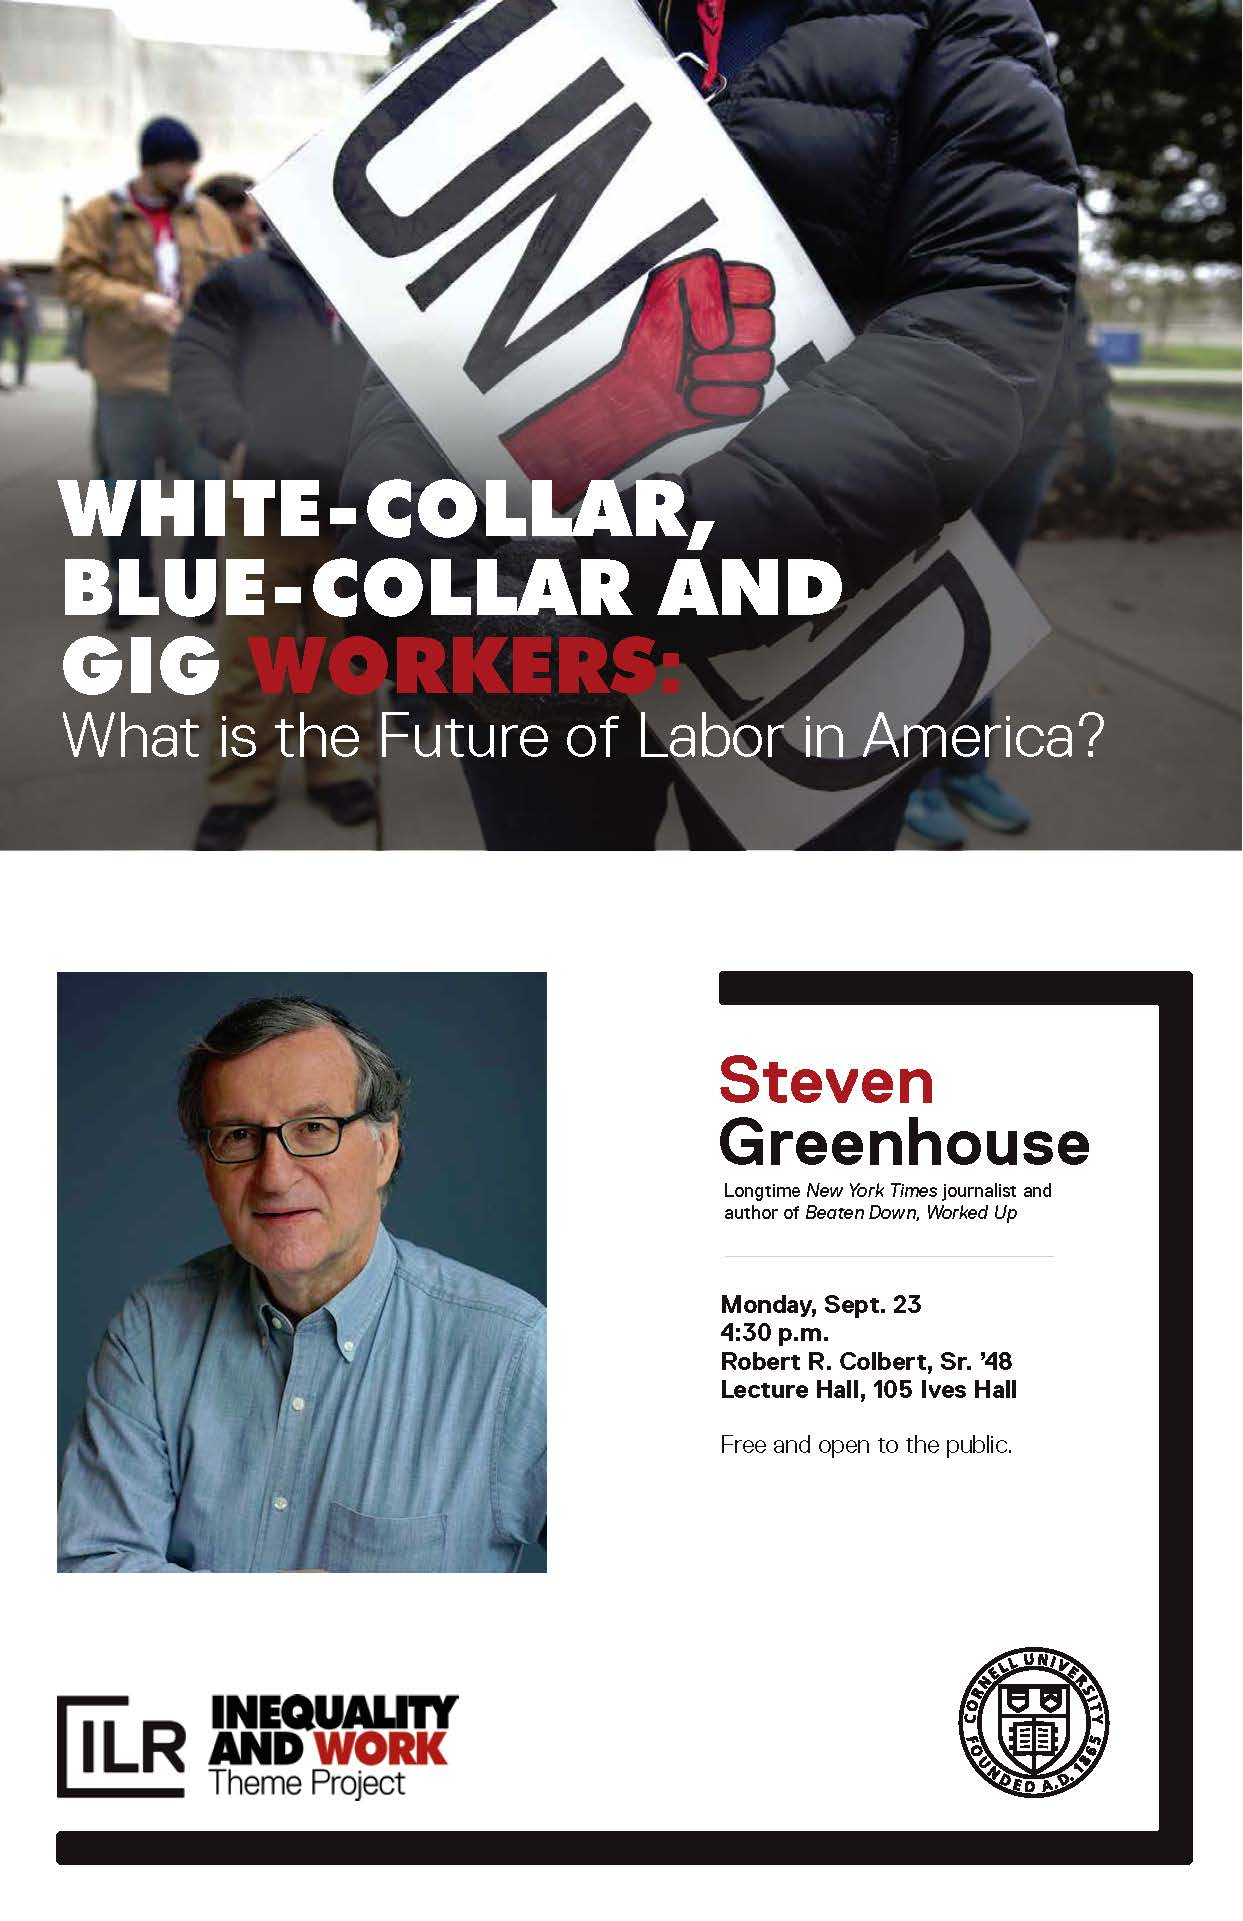 Public Lecture by Steven Greenhouse